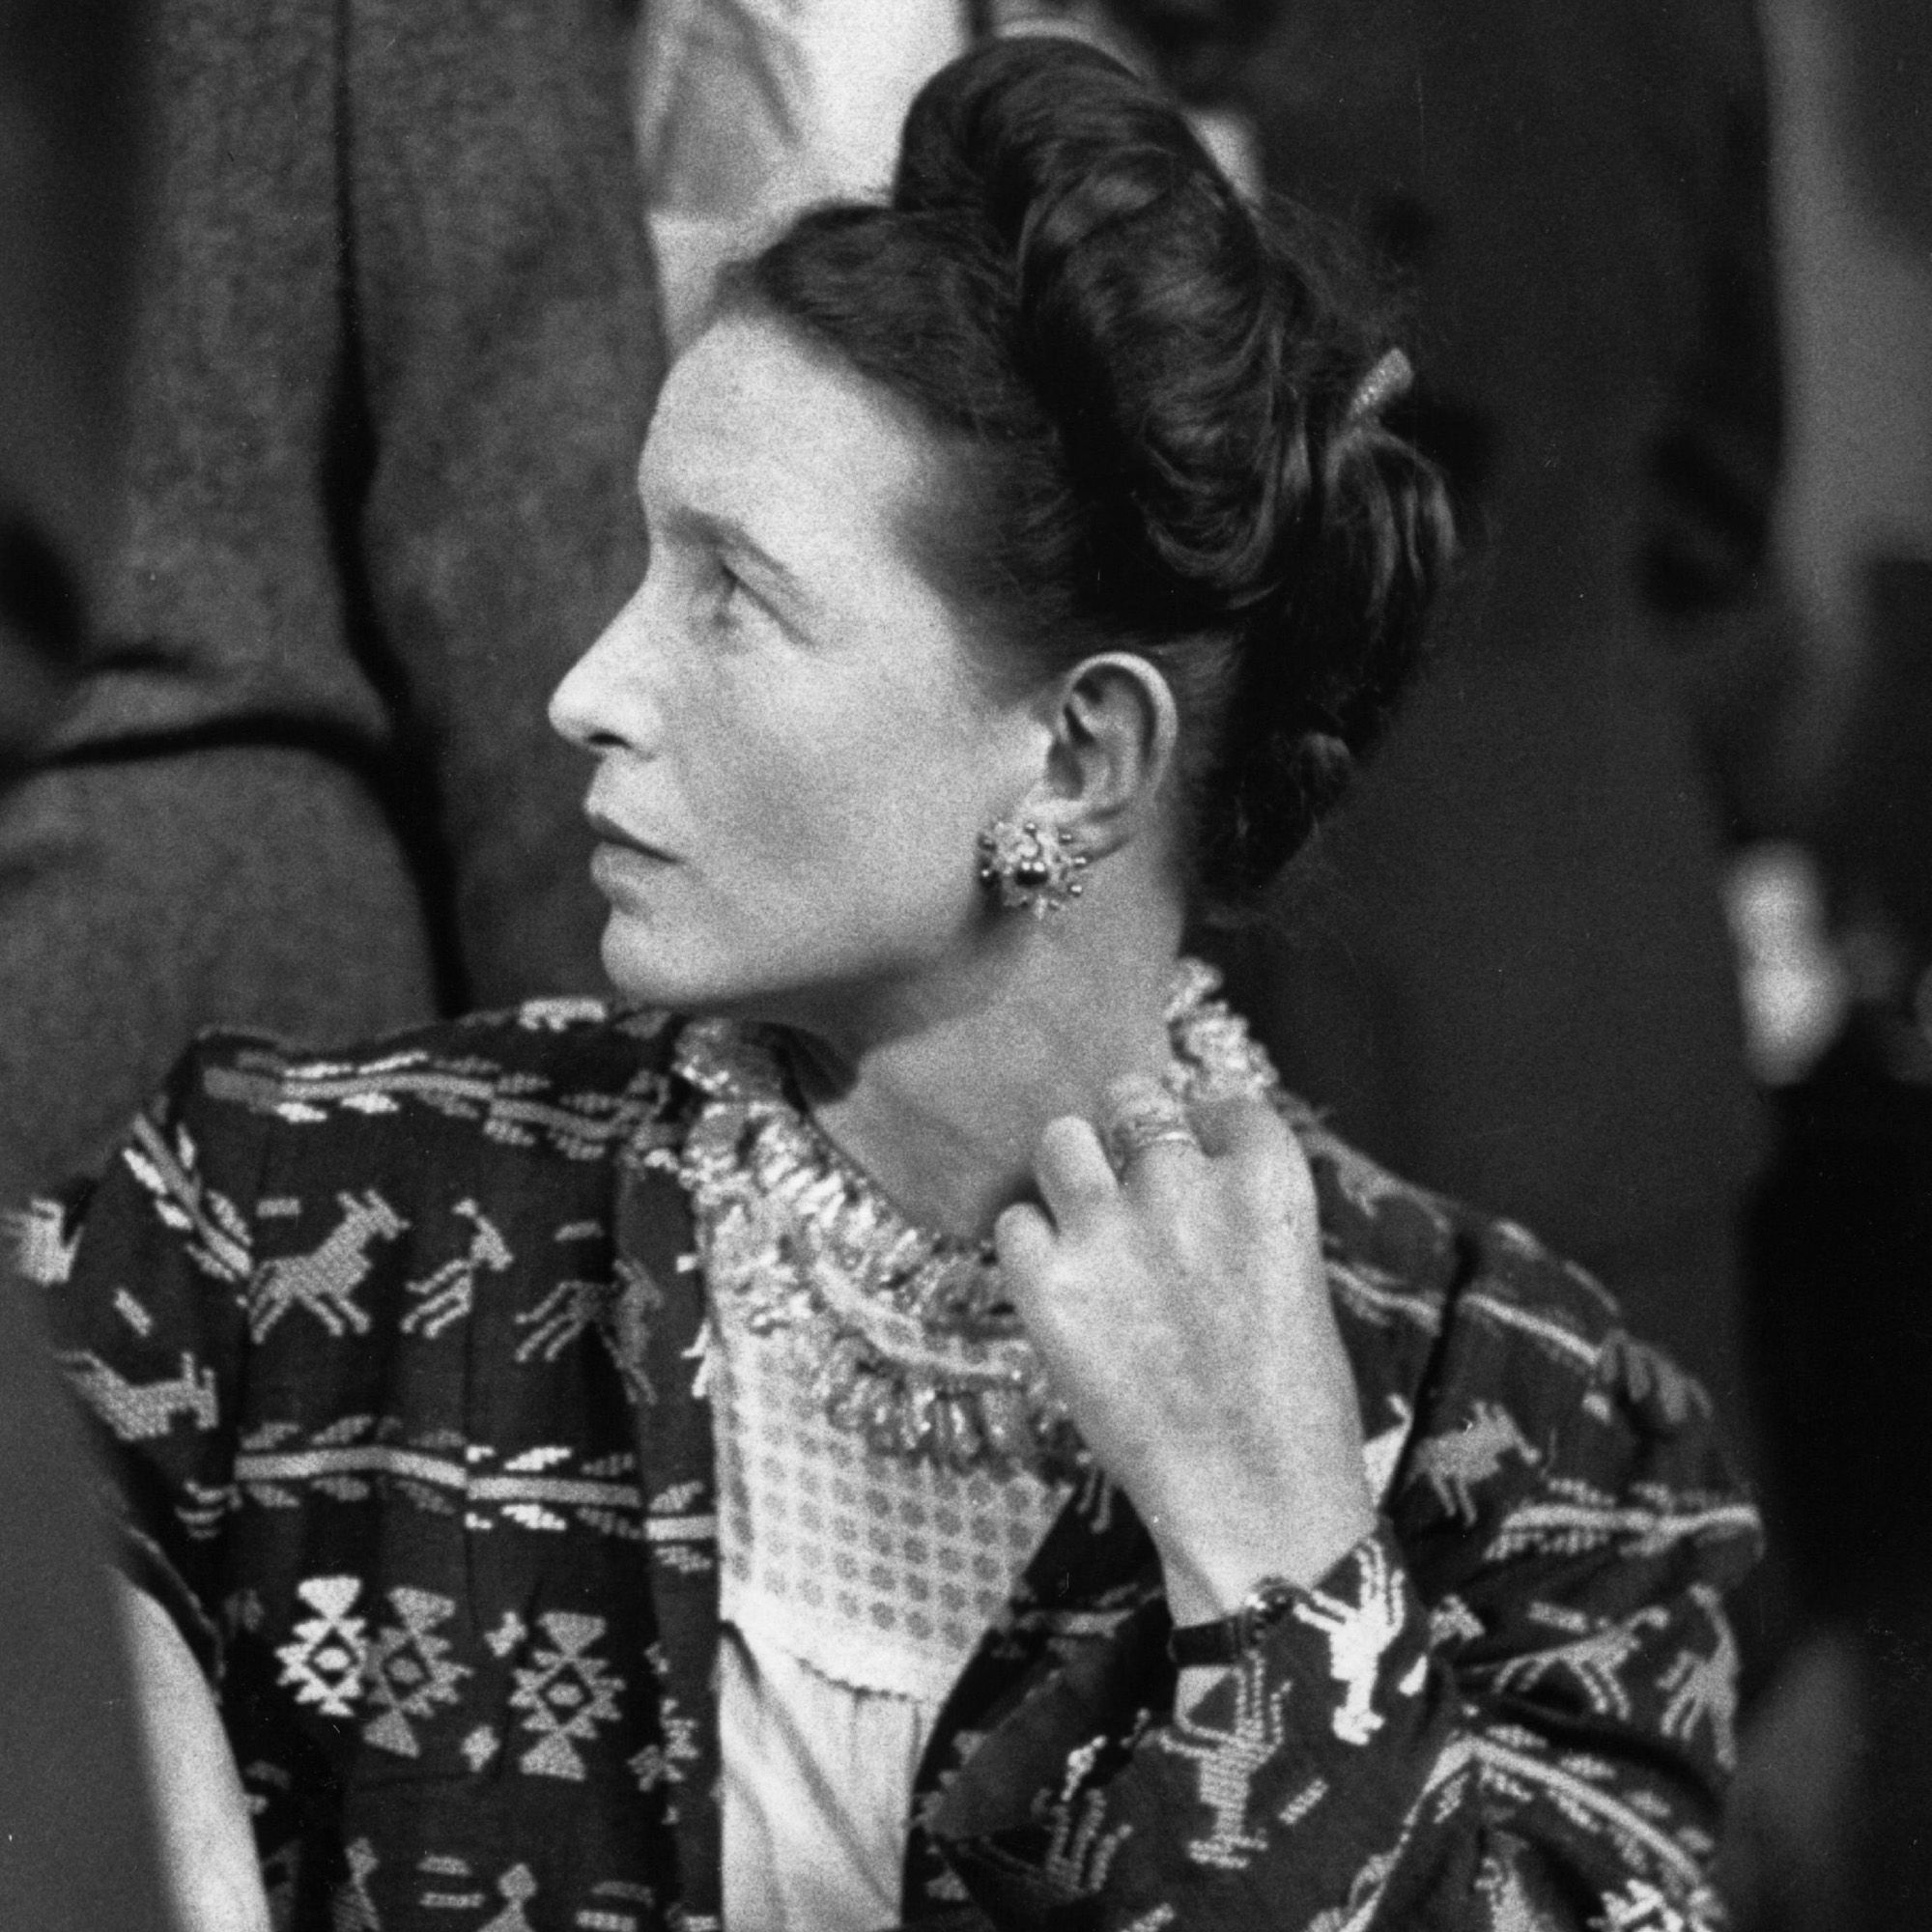 <p>Author, existentialist and feminist, Simone de Beauvoir wrote novels, biographies and essays. Most well-known for <em>The Second Sex</em>, a social analysis of women's oppression, de Beauvoir's look contained a little bit of the unfiltered insouciance seen in the French fashion scene: jackets that were a bit too big, tattered purses and dresses verging on frumpy were paired with costume jewelry that resulted in an ironic form of ugly-chic in the best possible way.</p>